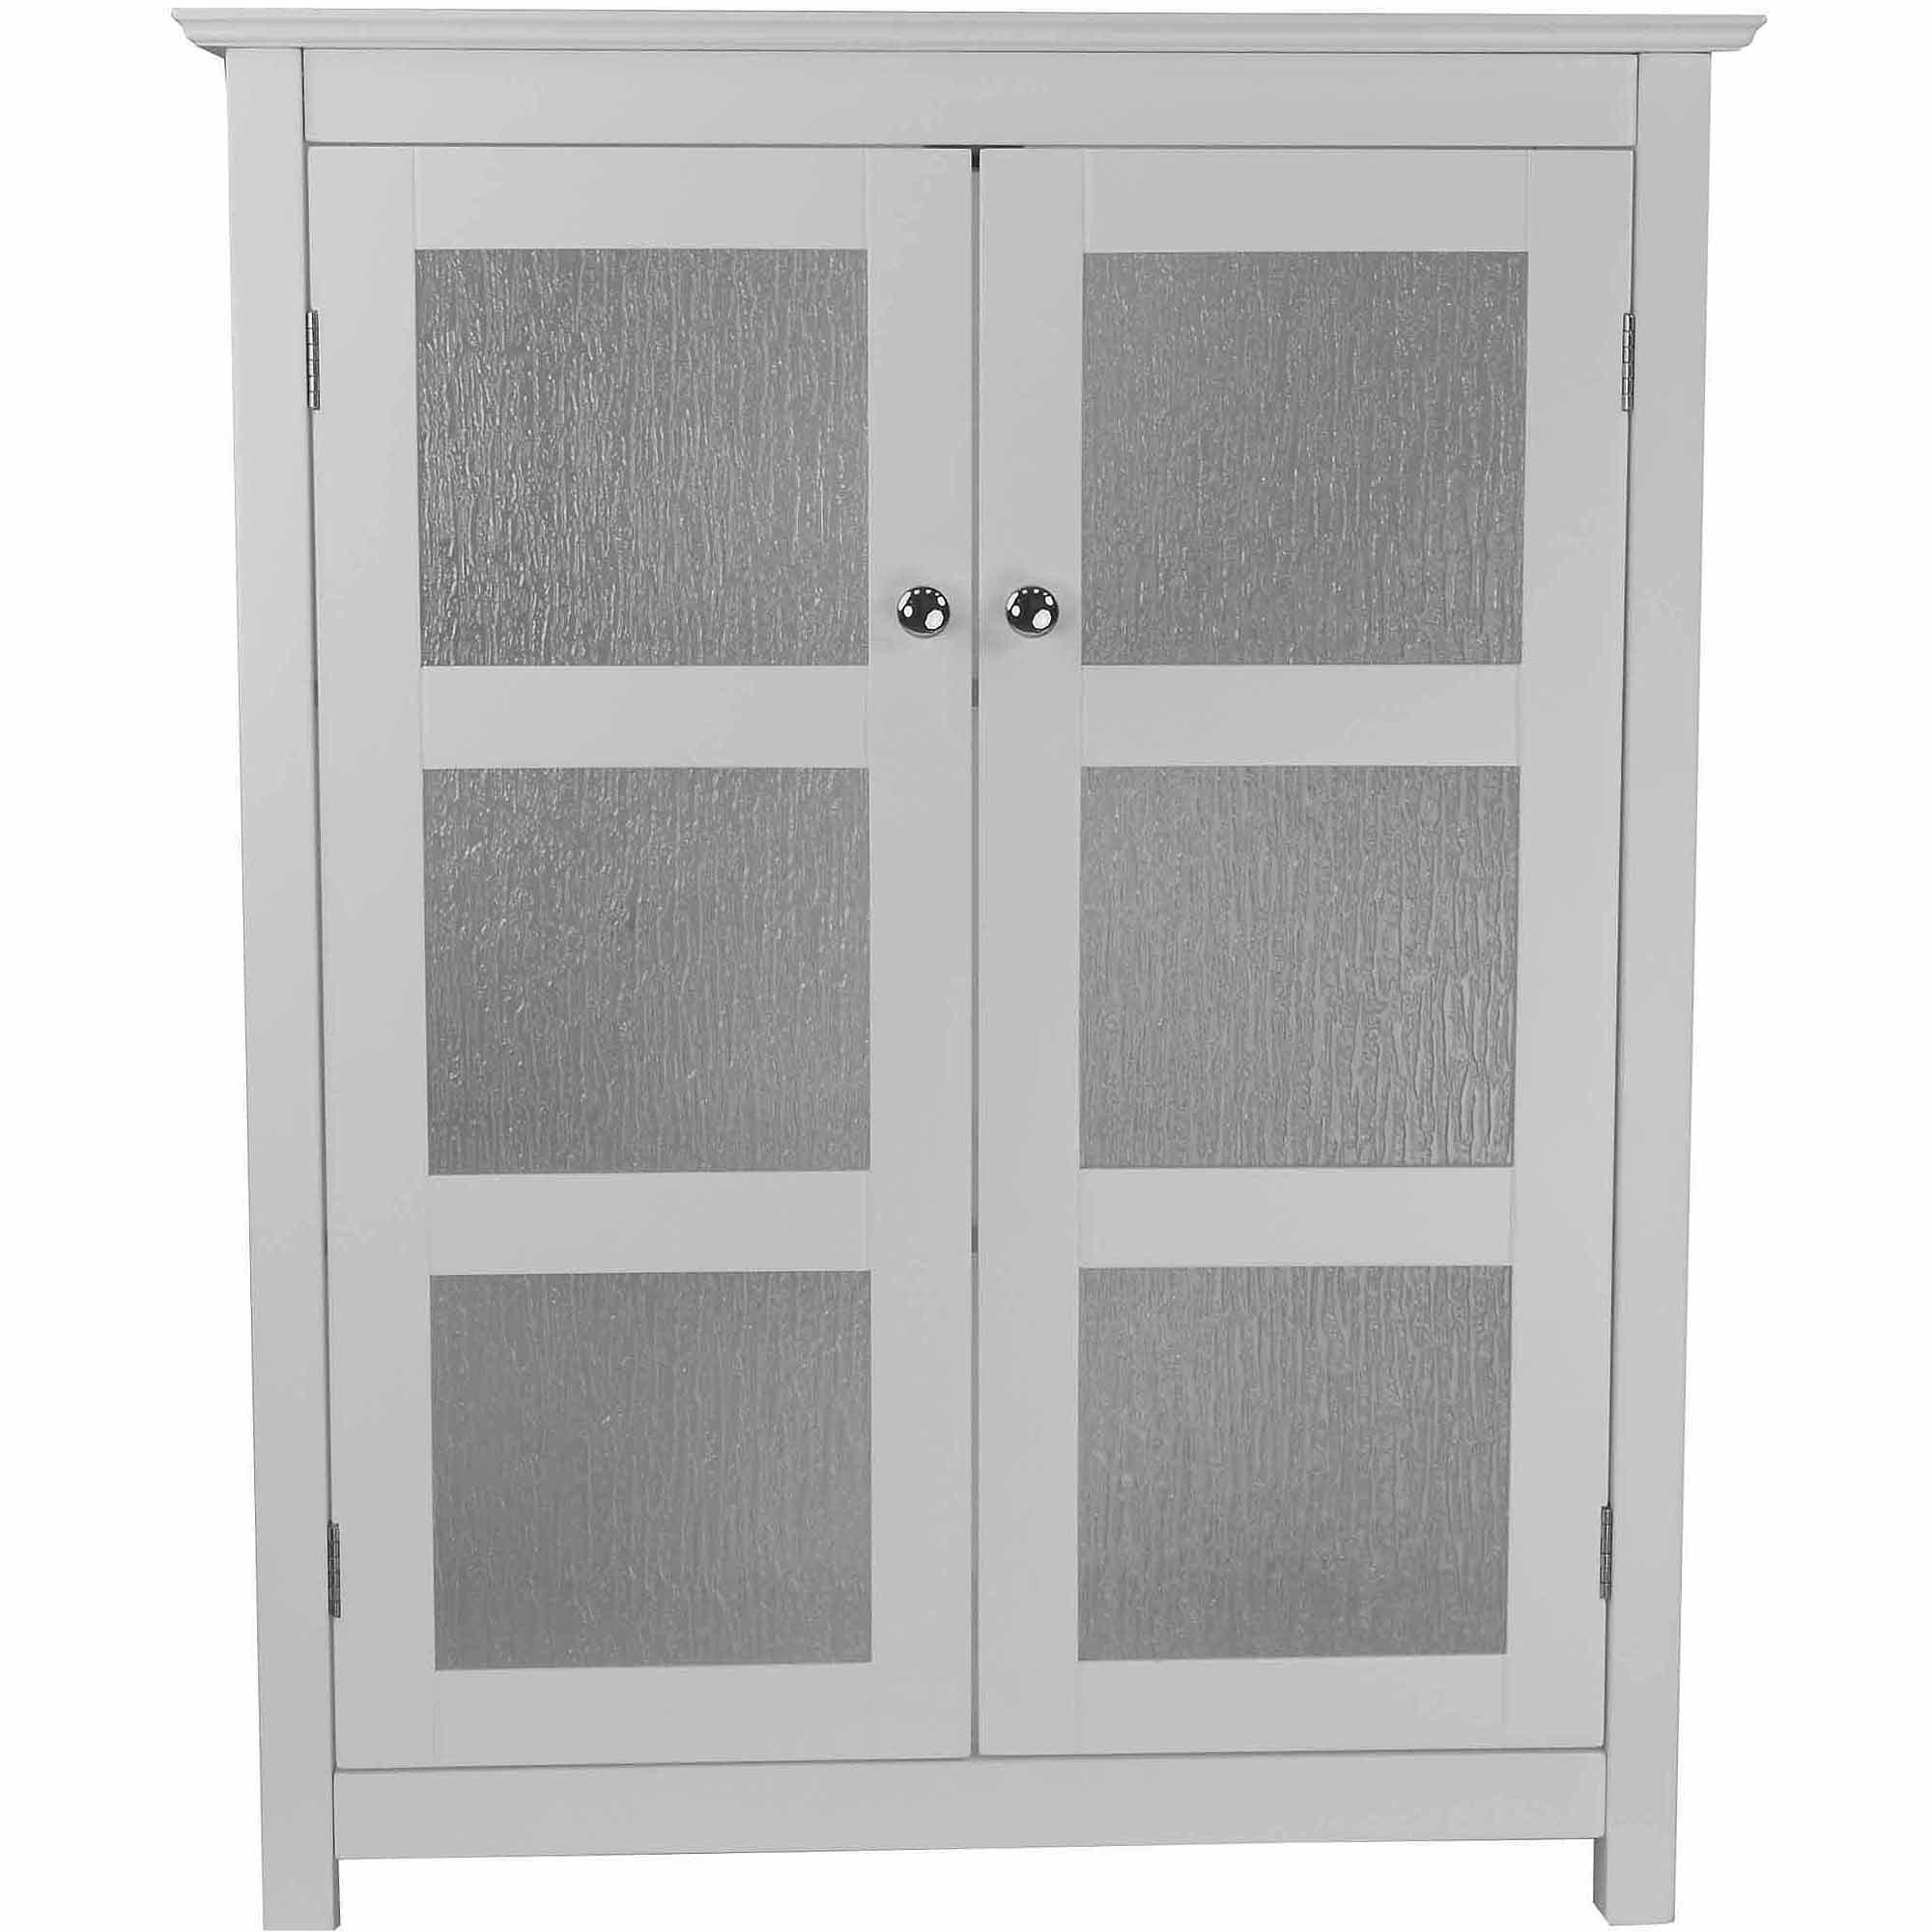 Connor Floor Cabinet with 2 Glass Doors White  Walmartcom